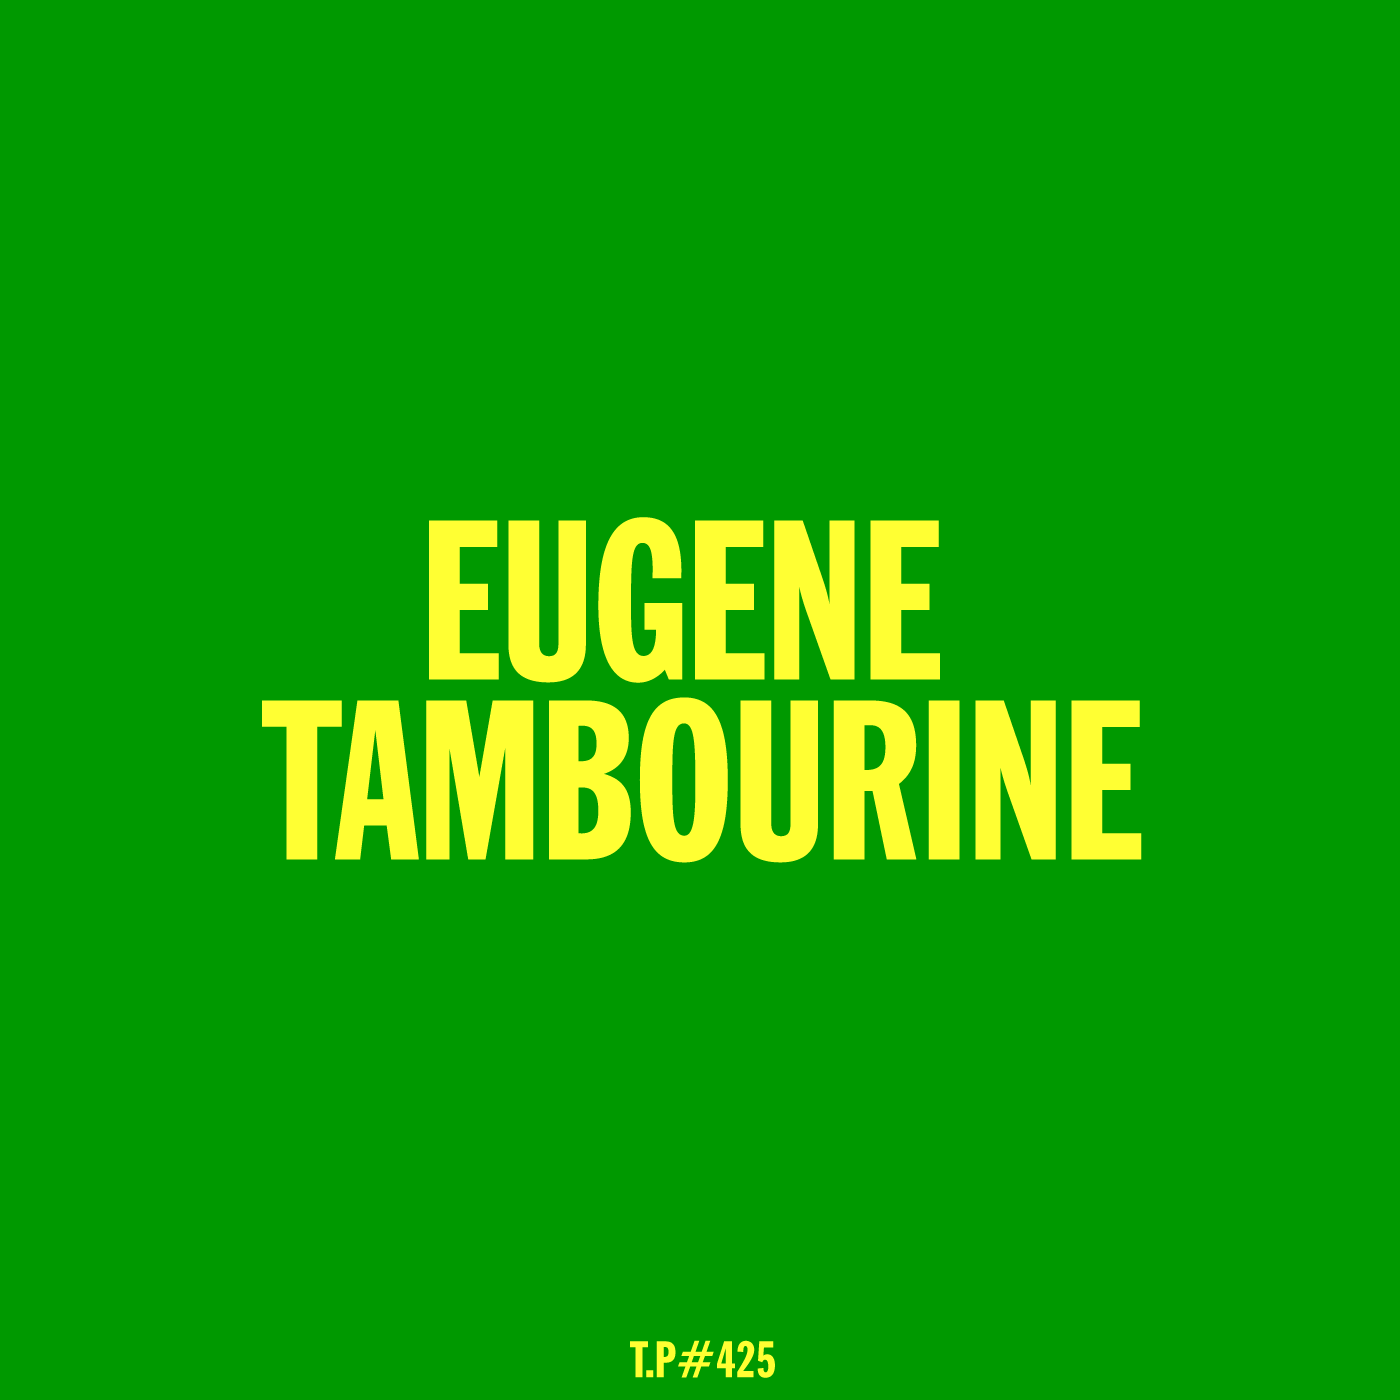 Eugene Tambourine, Mix, Tummy Touch, Test Pressing